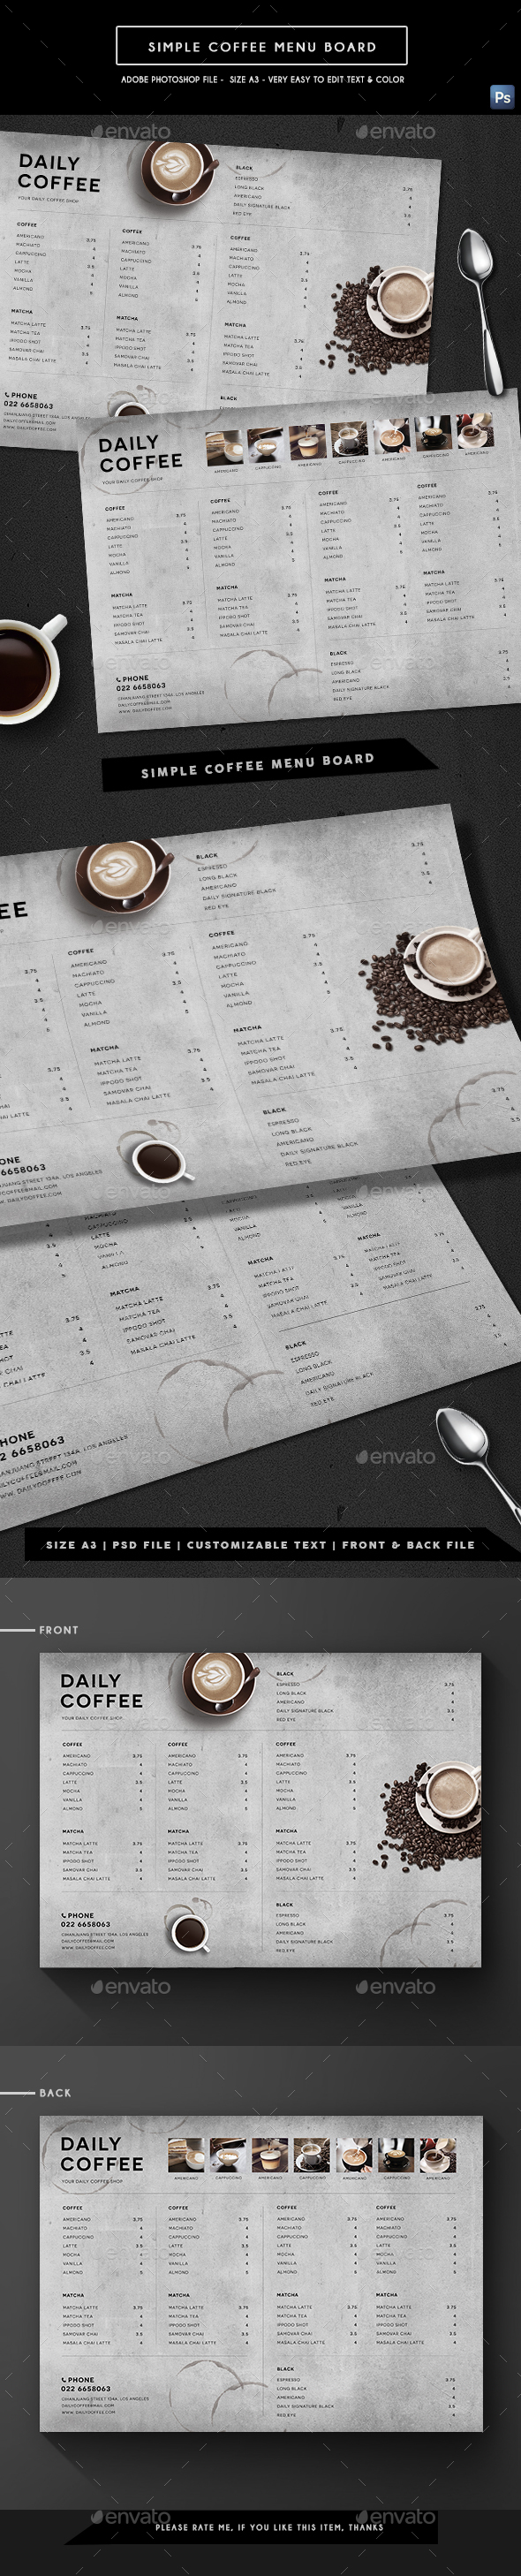 Simple Coffee Menu Board - Food Menus Print Templates